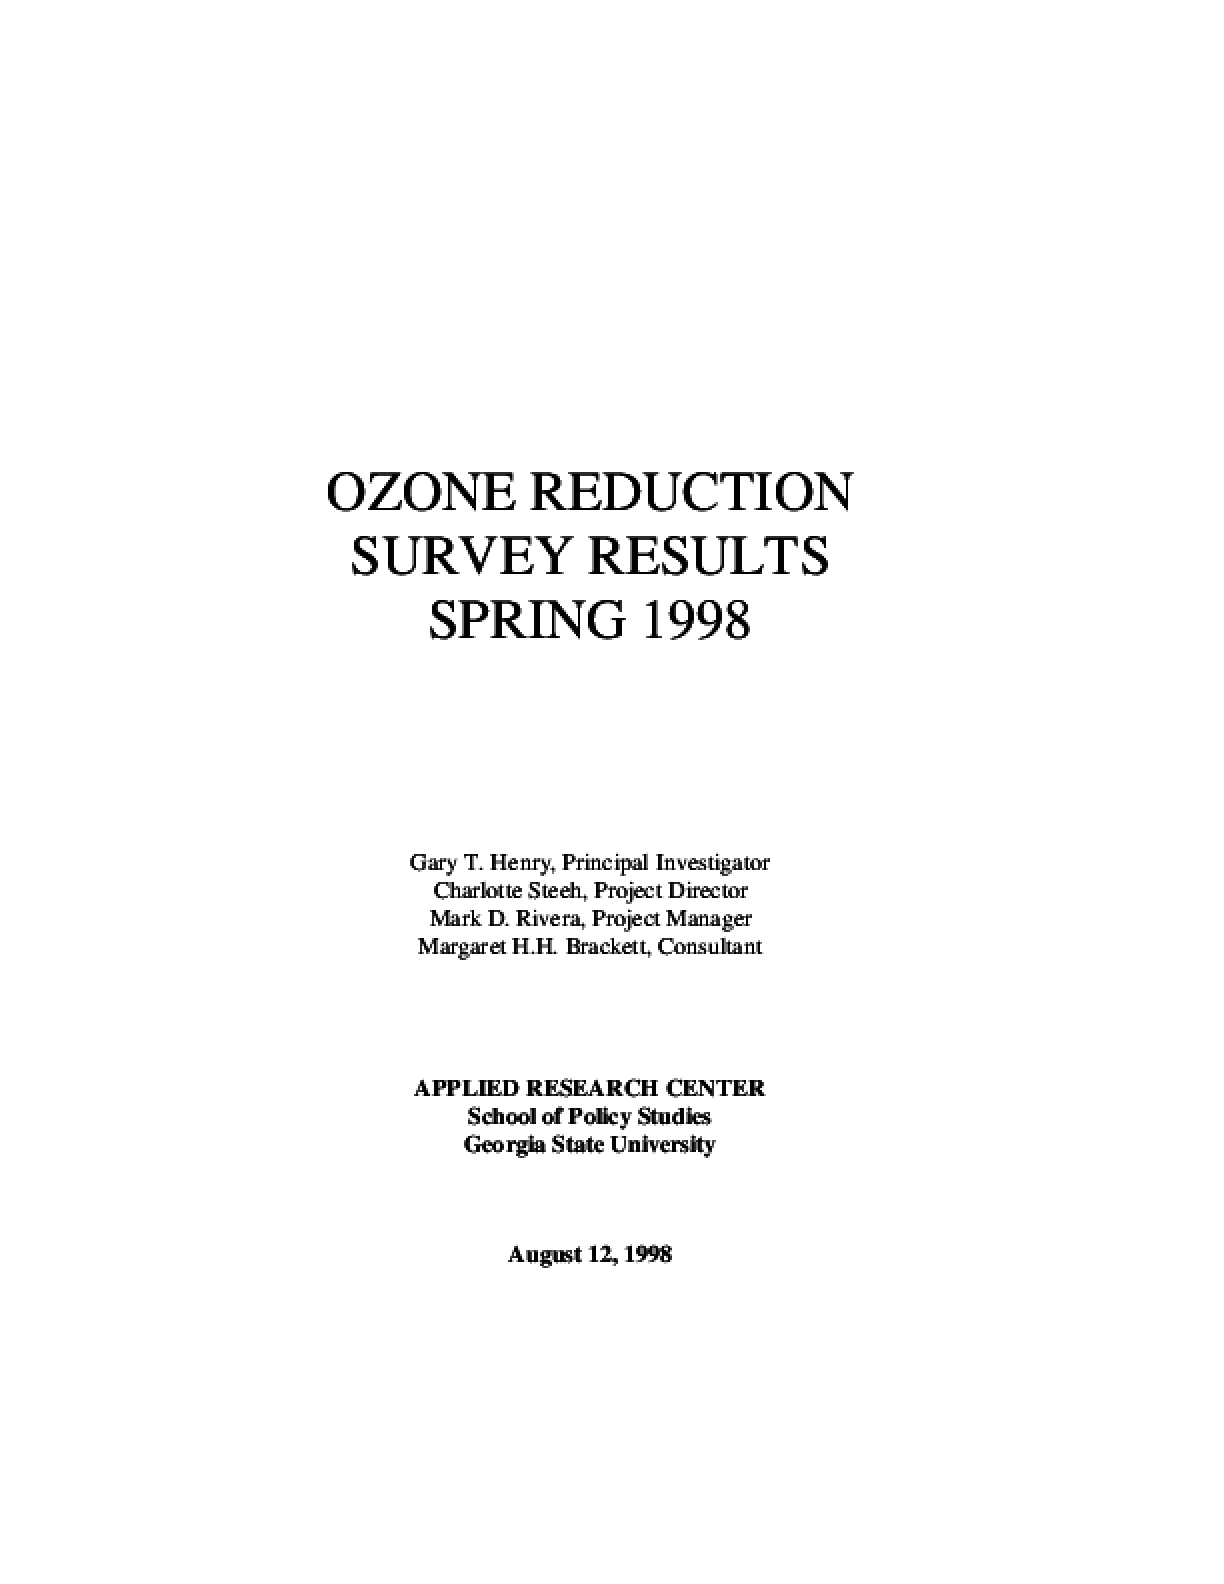 Ozone Reduction Survey Results: The Spring 98 Report